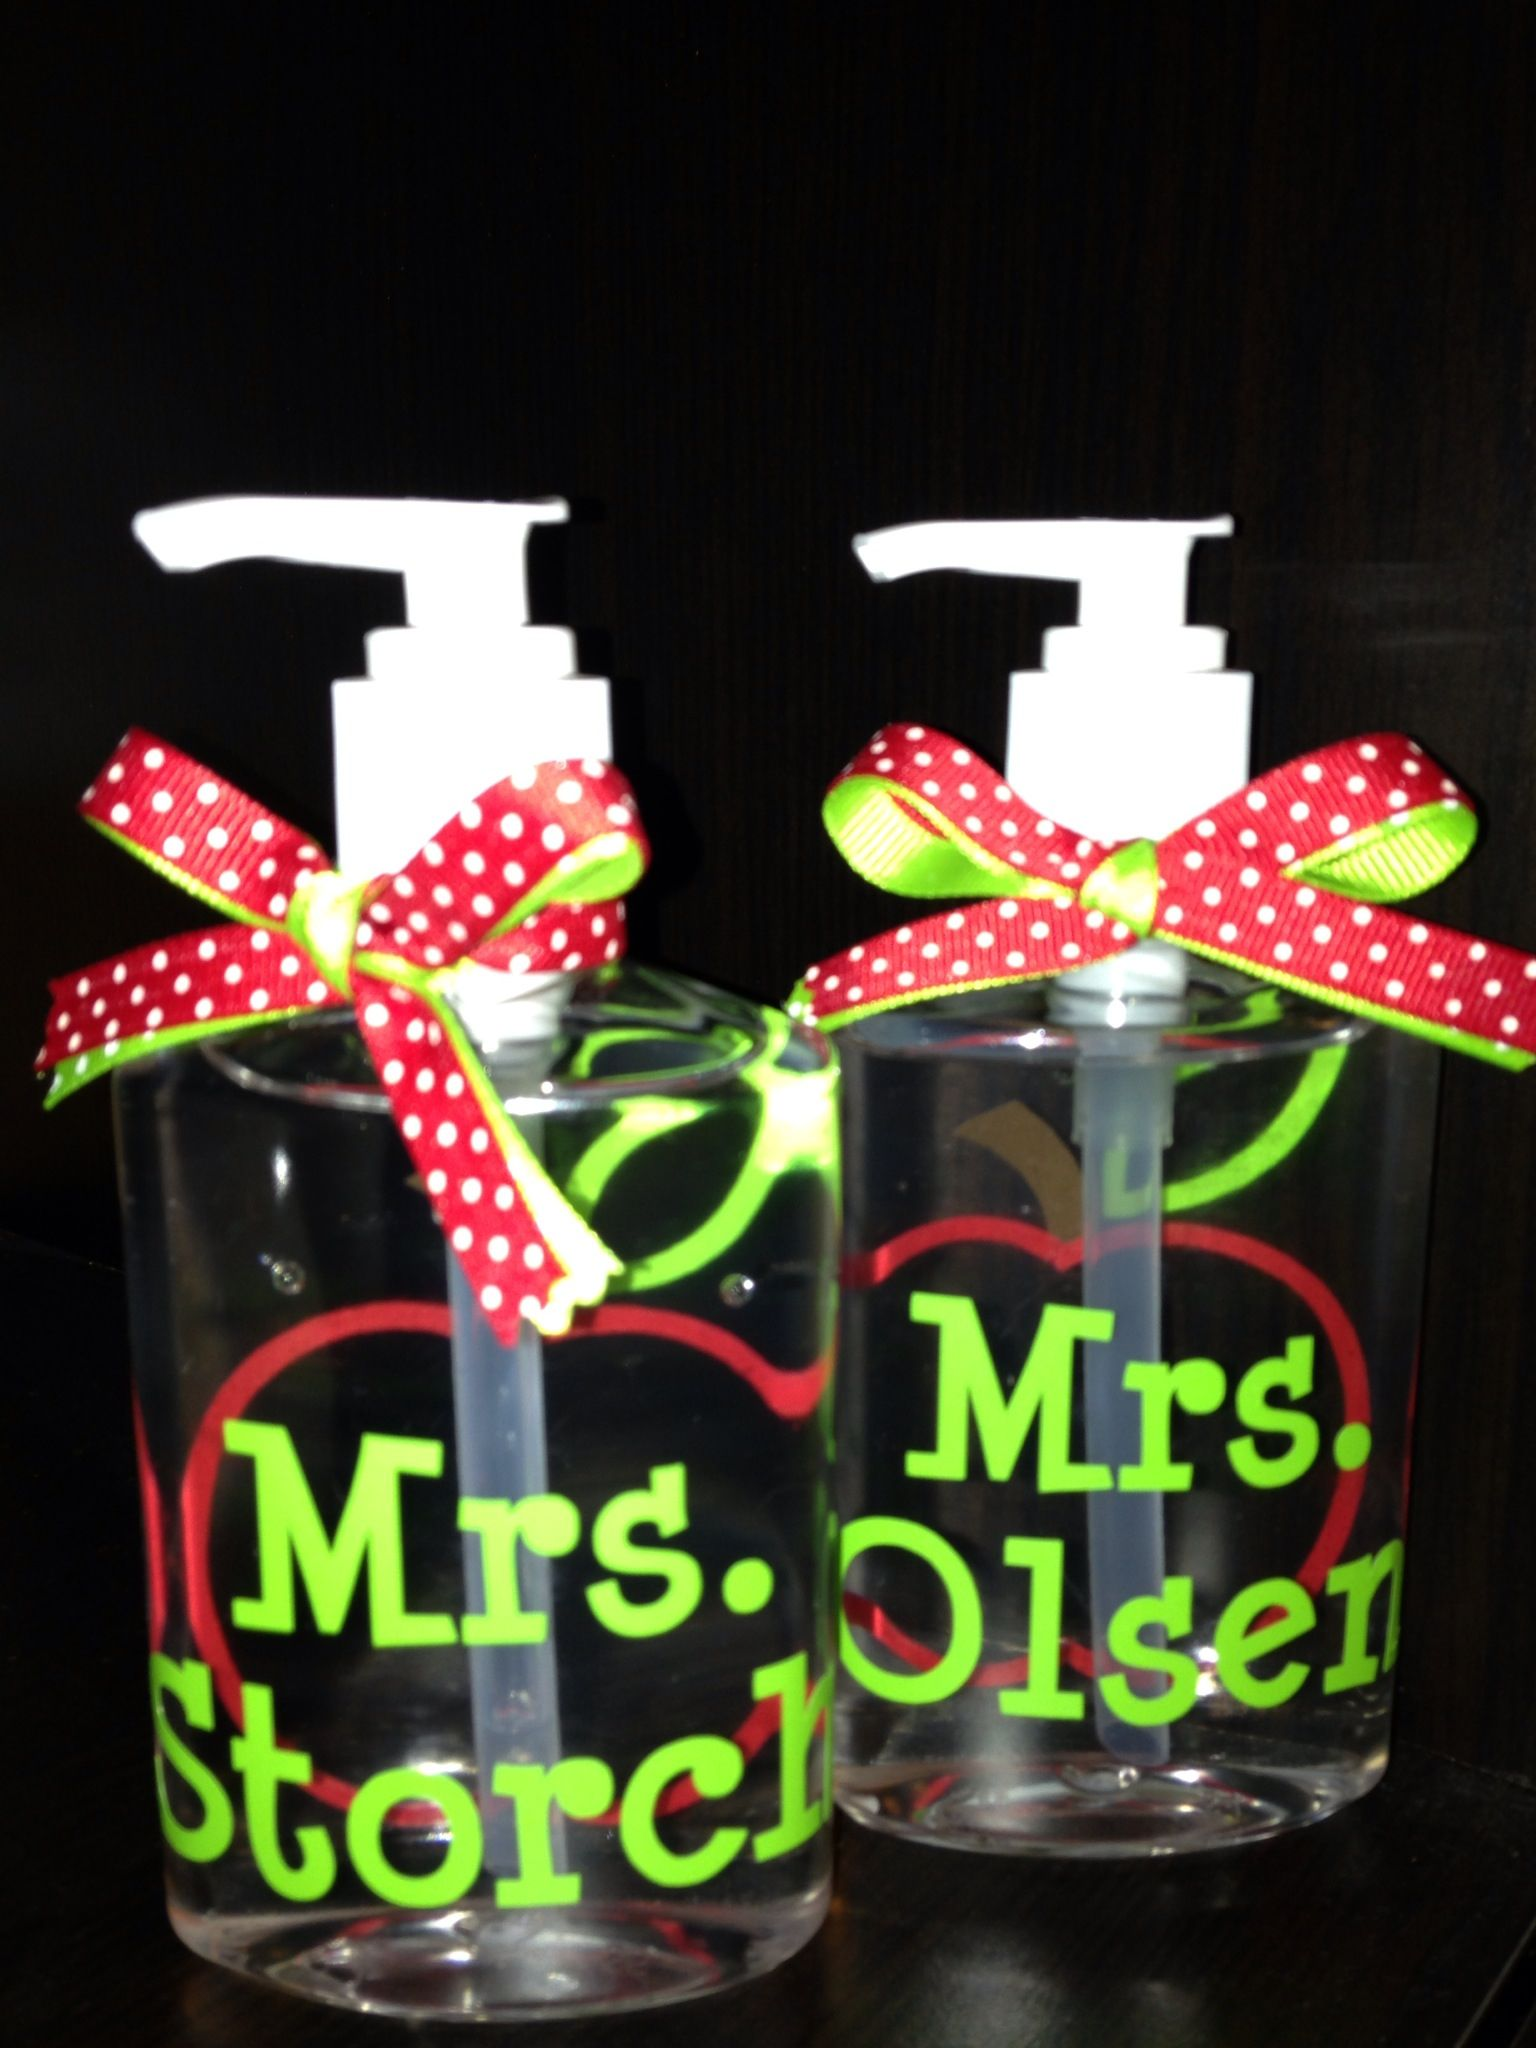 Hand Sanitizer As Teacher Gifts Personalized With Vinyl Names